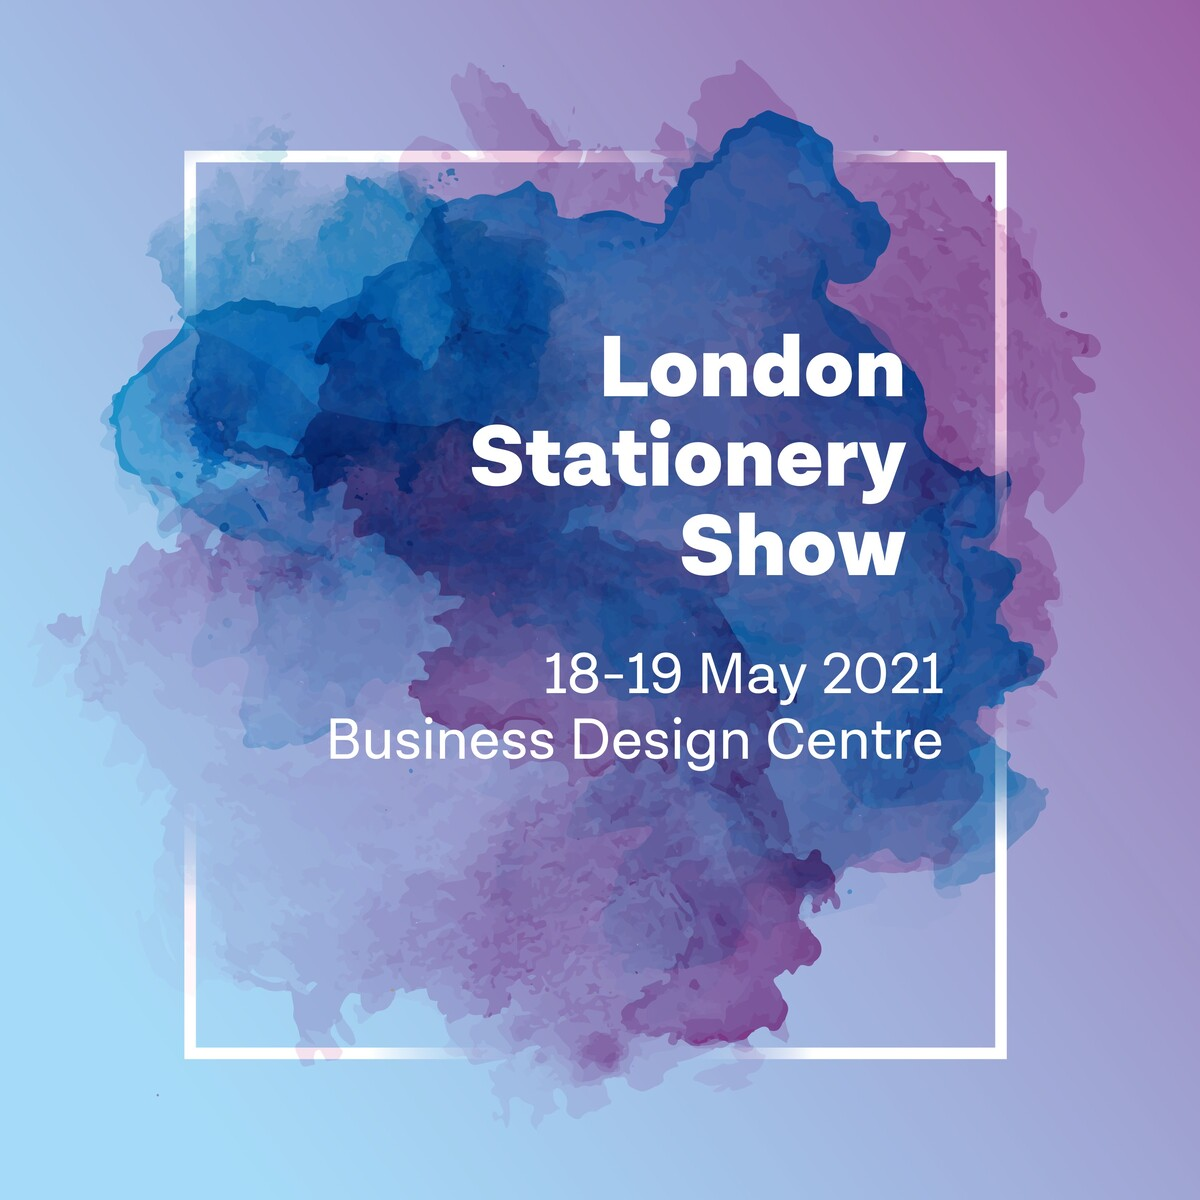 London Stationery Show announces May 2021 dates